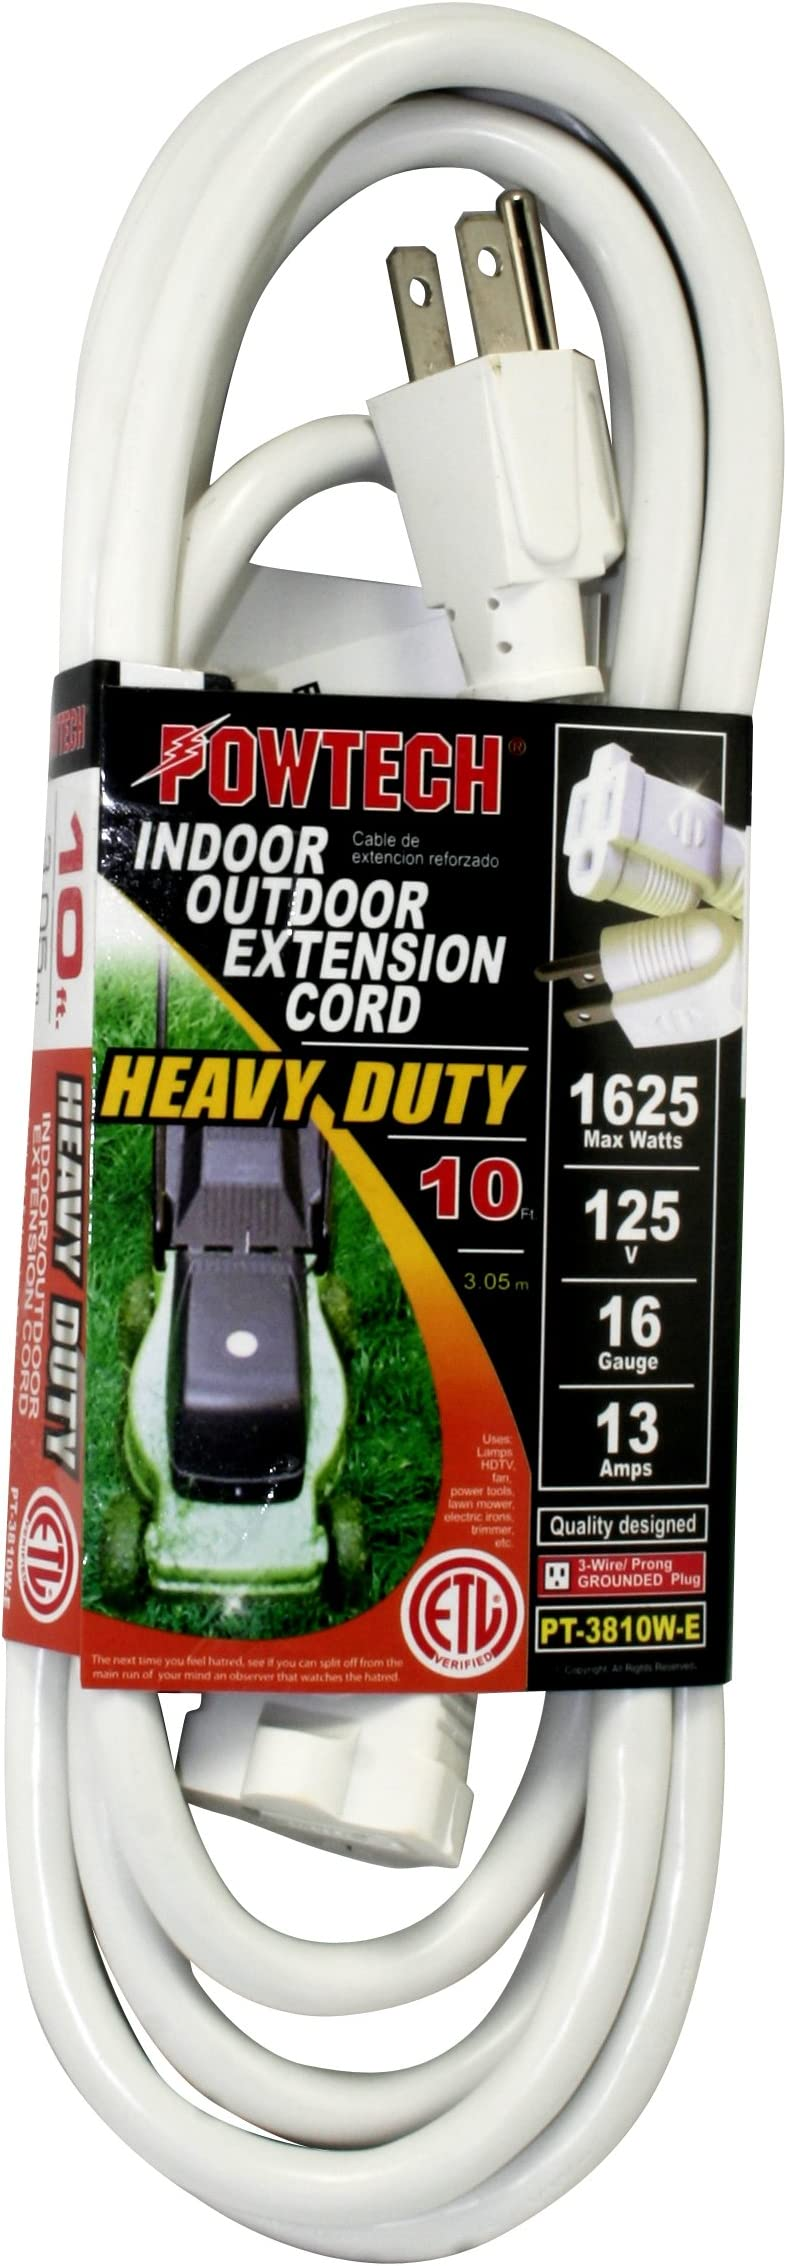 50FT 16 Gauge Power Extension Cord Cable Outdoor 3-Prong Grounded SJTW Green